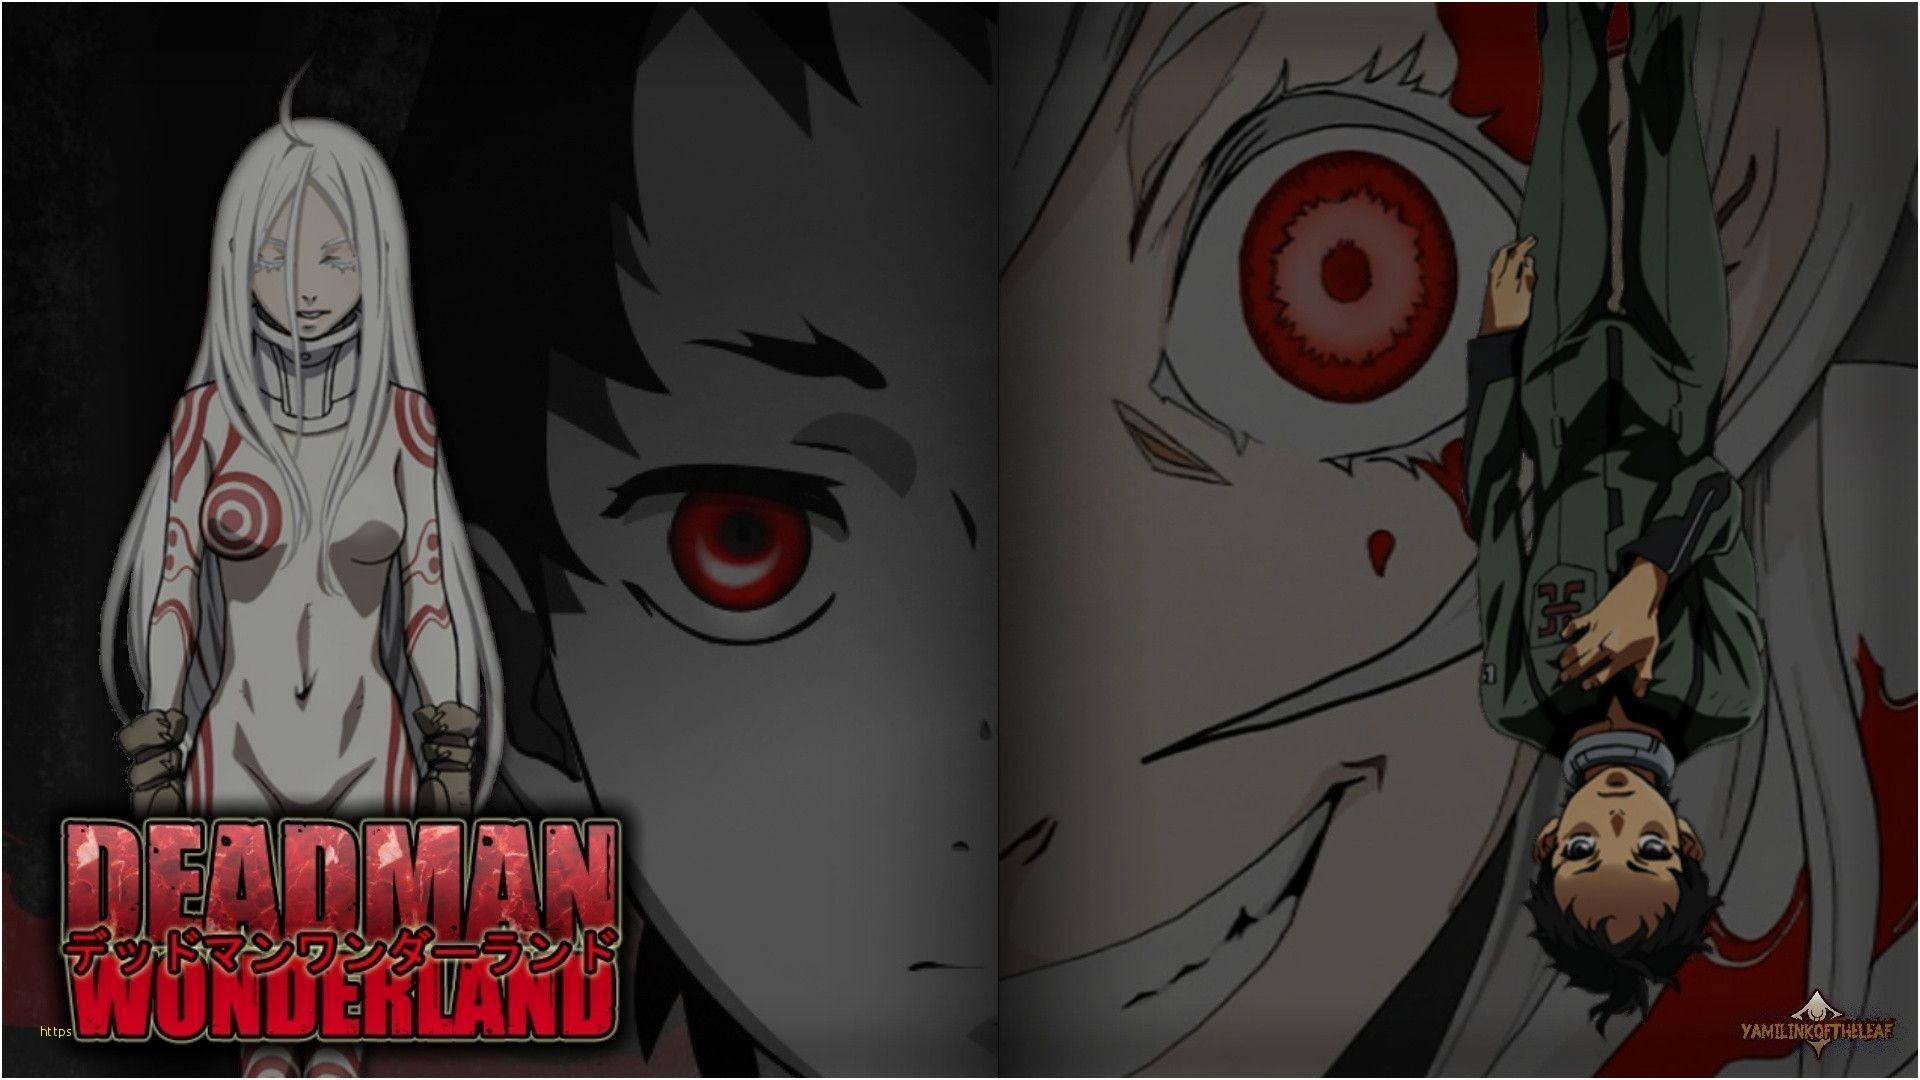 1920x1080 Deadman Wonderland Wallpaper Awesome Deadman Wonderland Wallpapers Wallpaper  Cave